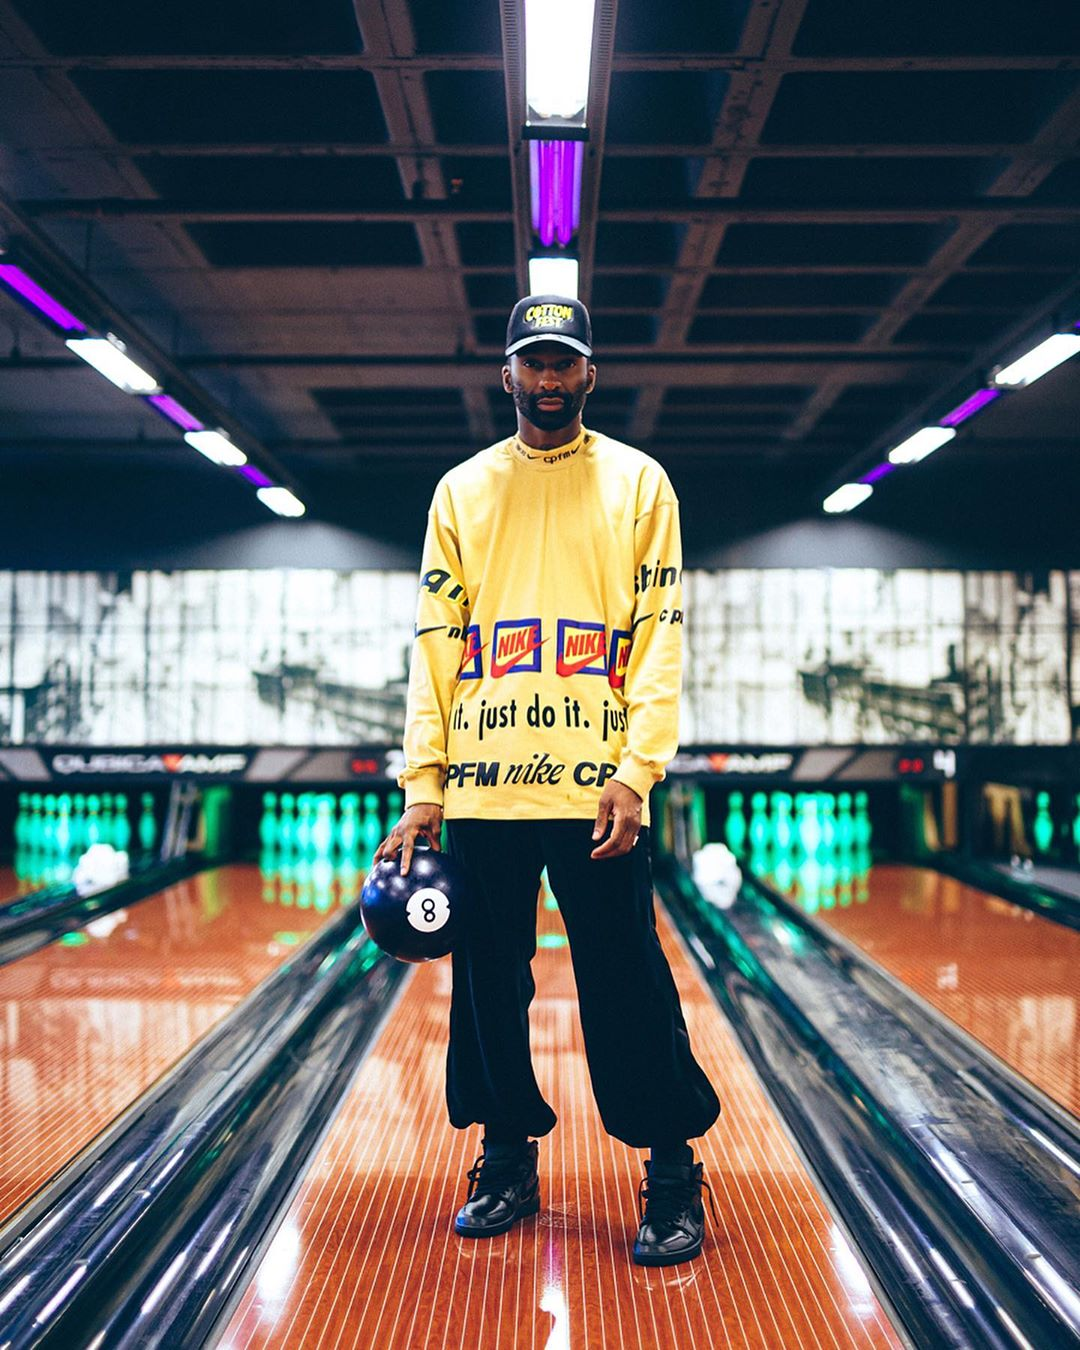 On: The #CottonFest2020 Bowling Invitational